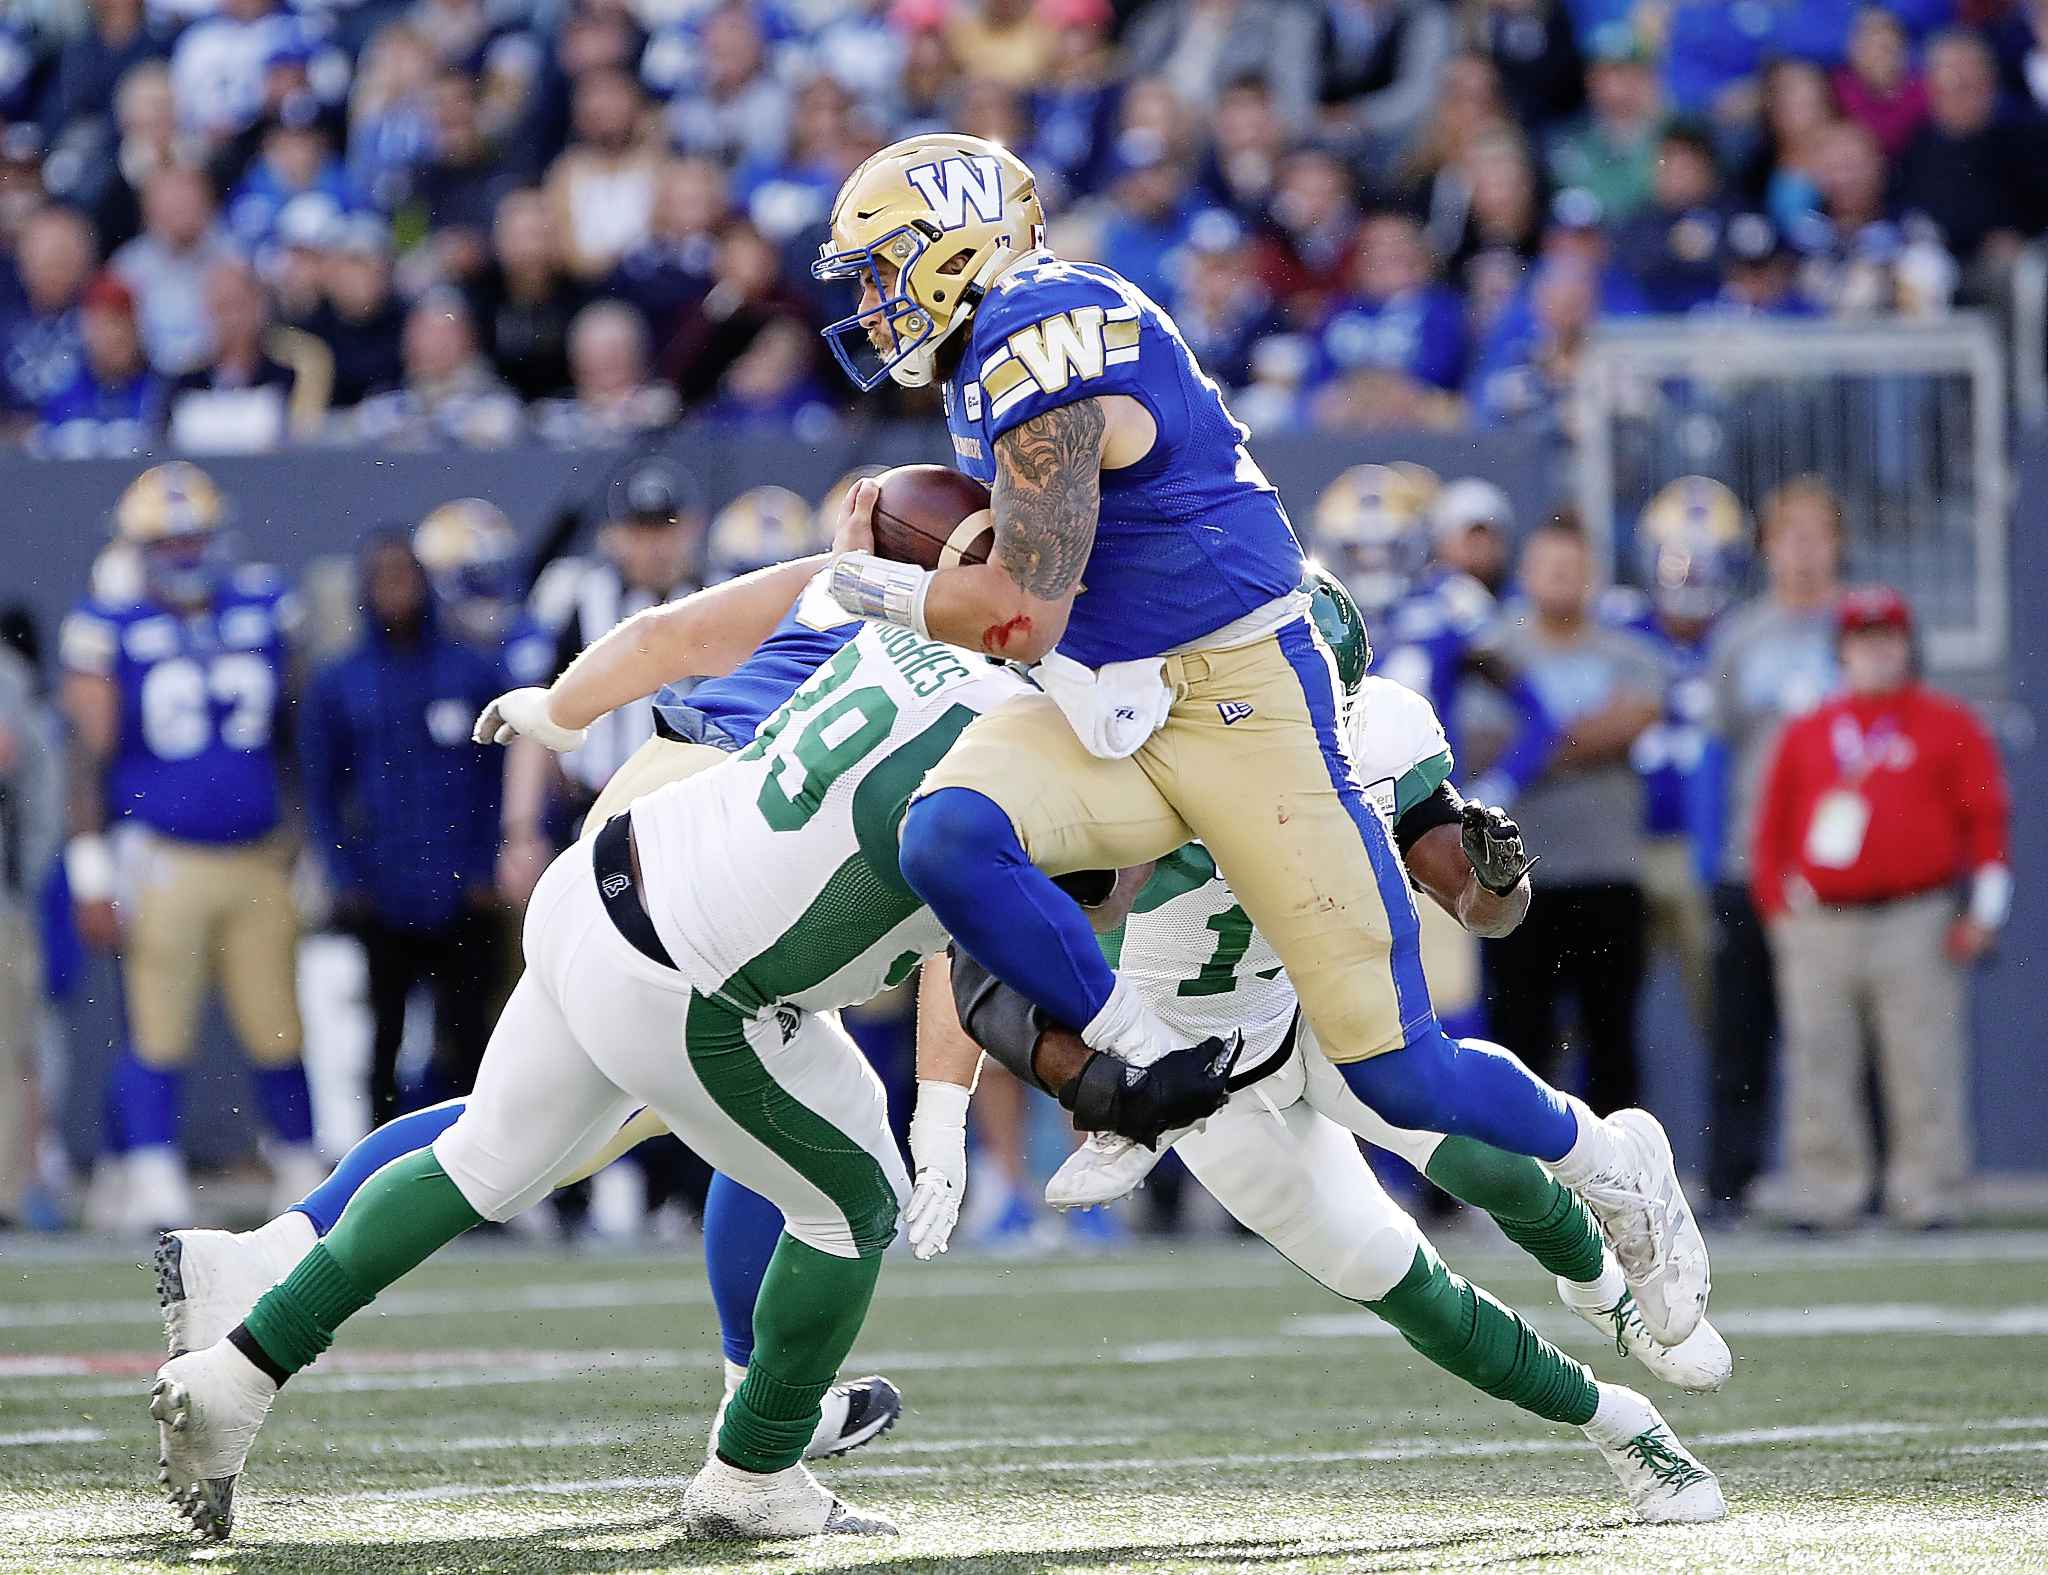 JOHN WOODS / THE CANADIAN PRESS FILES</p><p>Winnipeg Blue Bombers quarterback Chris Streveler (17) gets set to throw against the Saskatchewan Roughriders during the second half of CFL action in Winnipeg Saturday, September 7, 2019.</p>